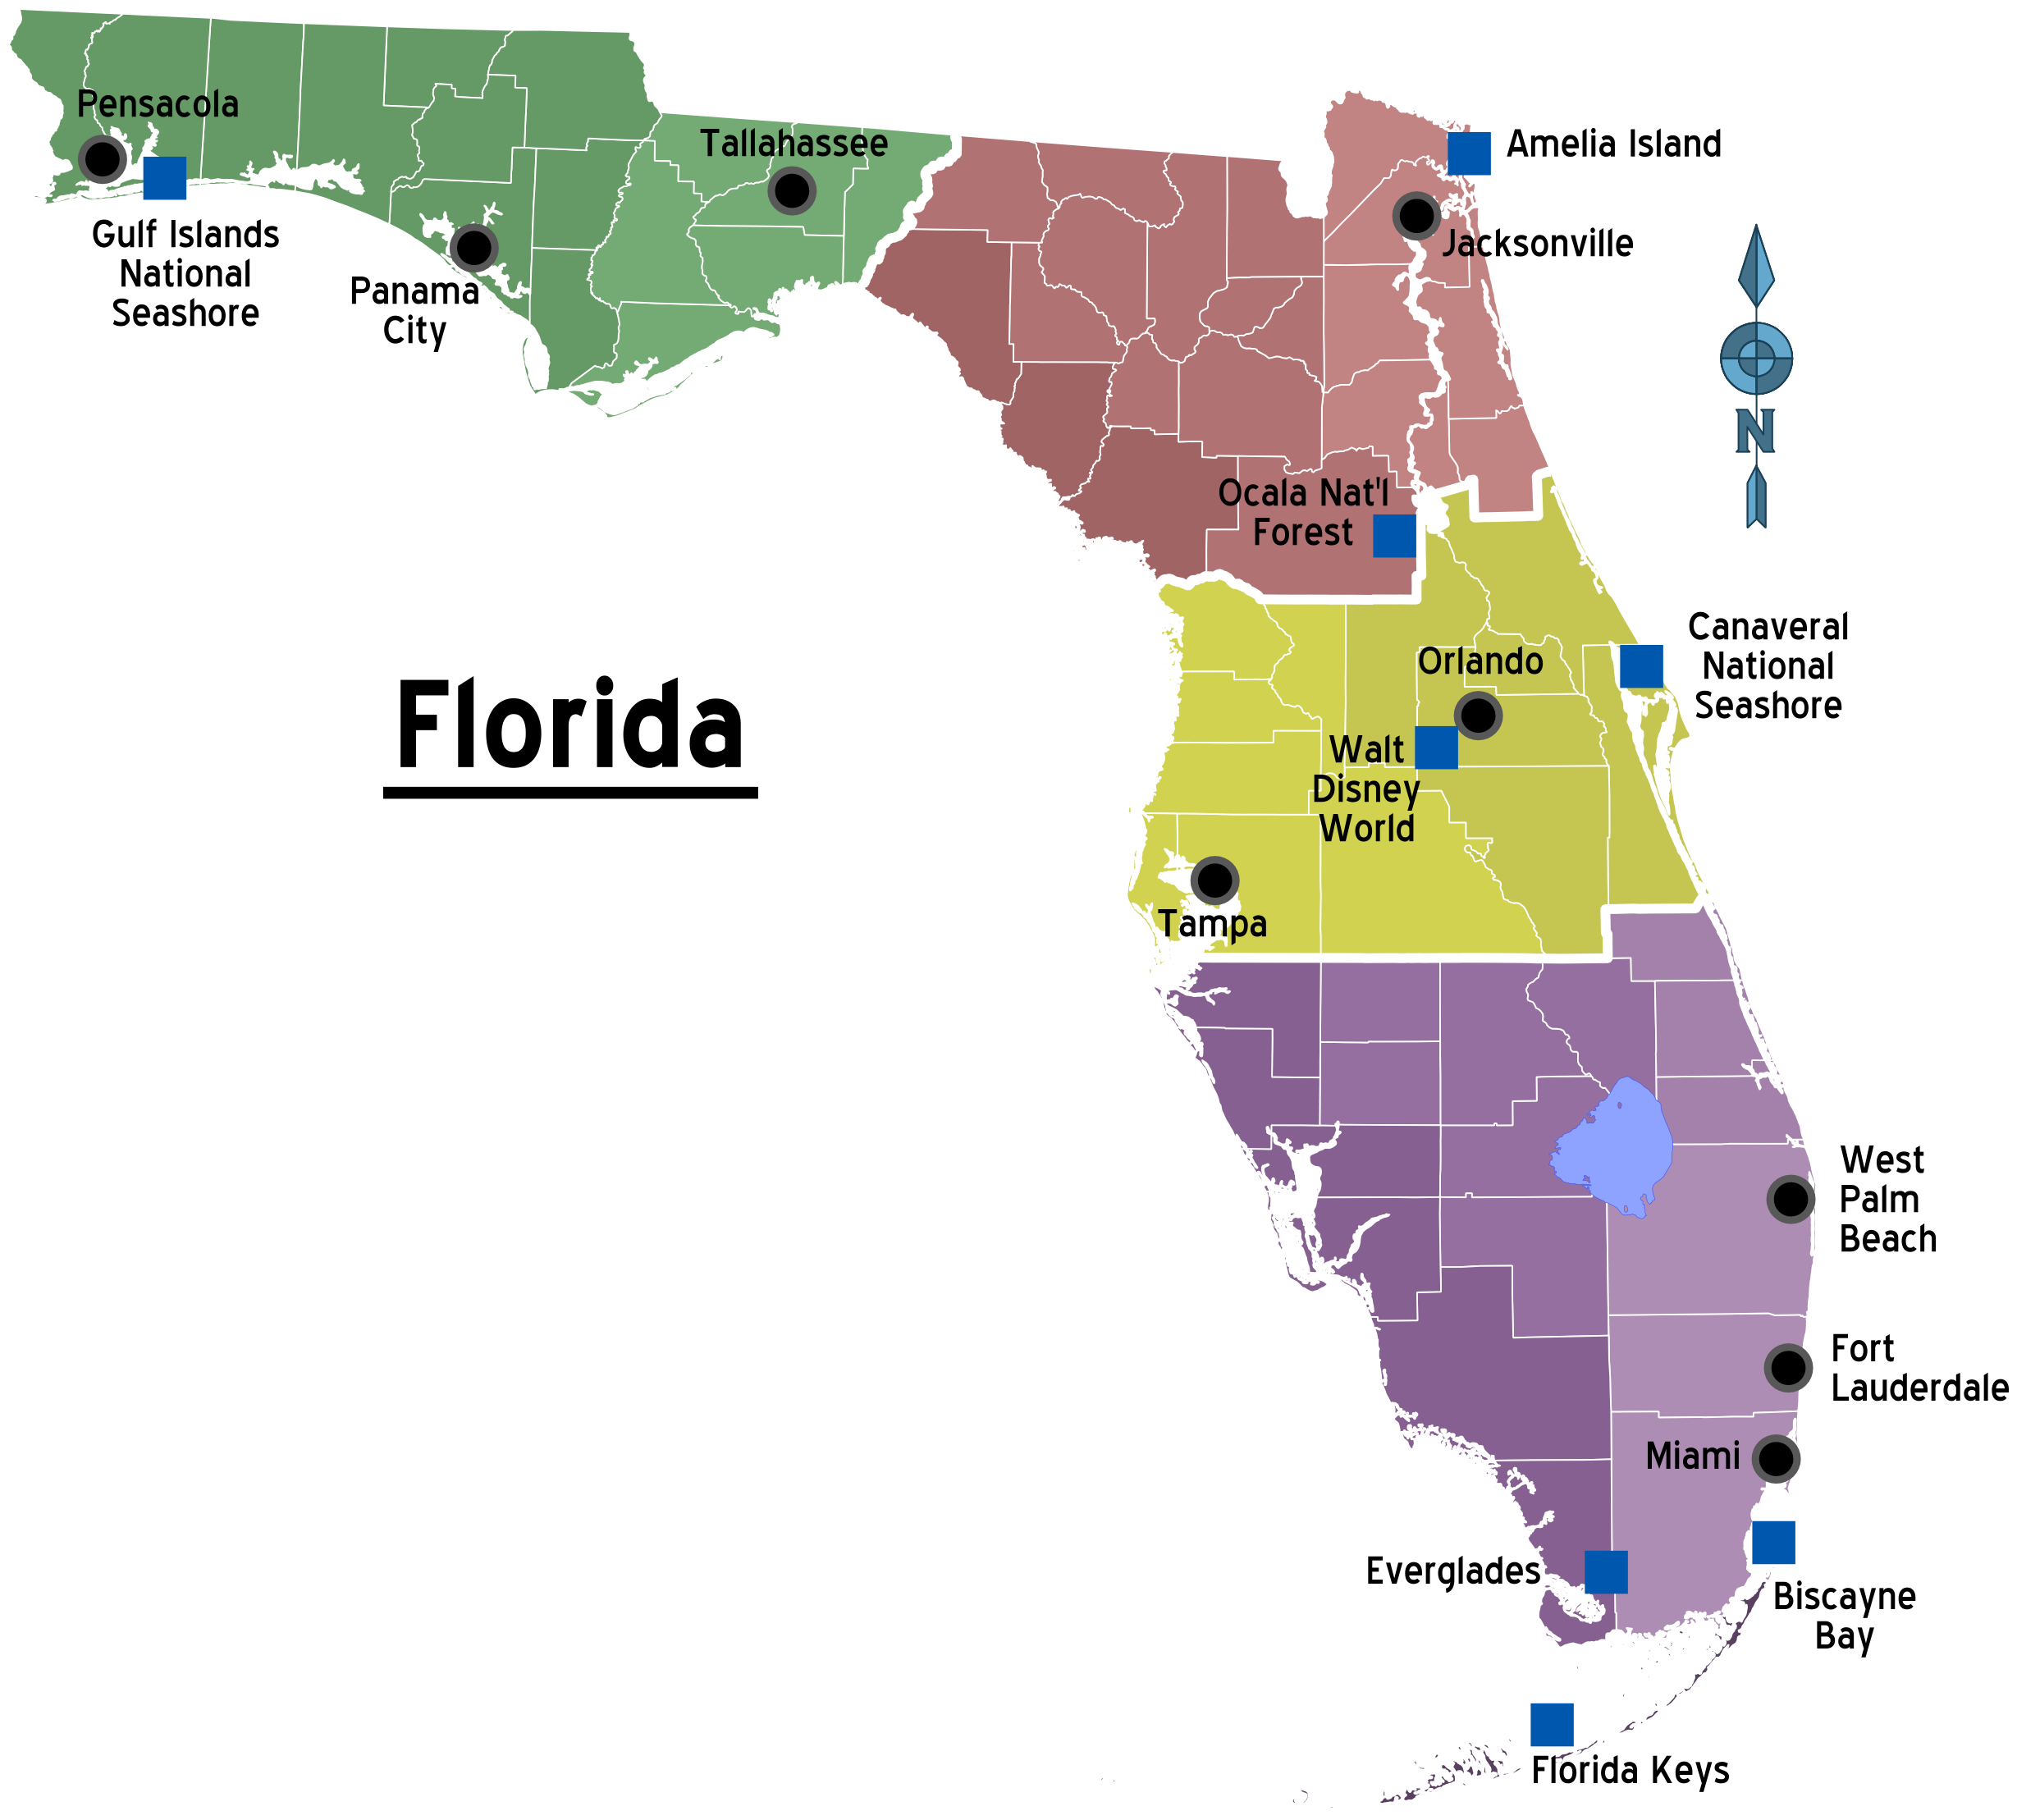 Map_of_Florida_Regions_with_Cities